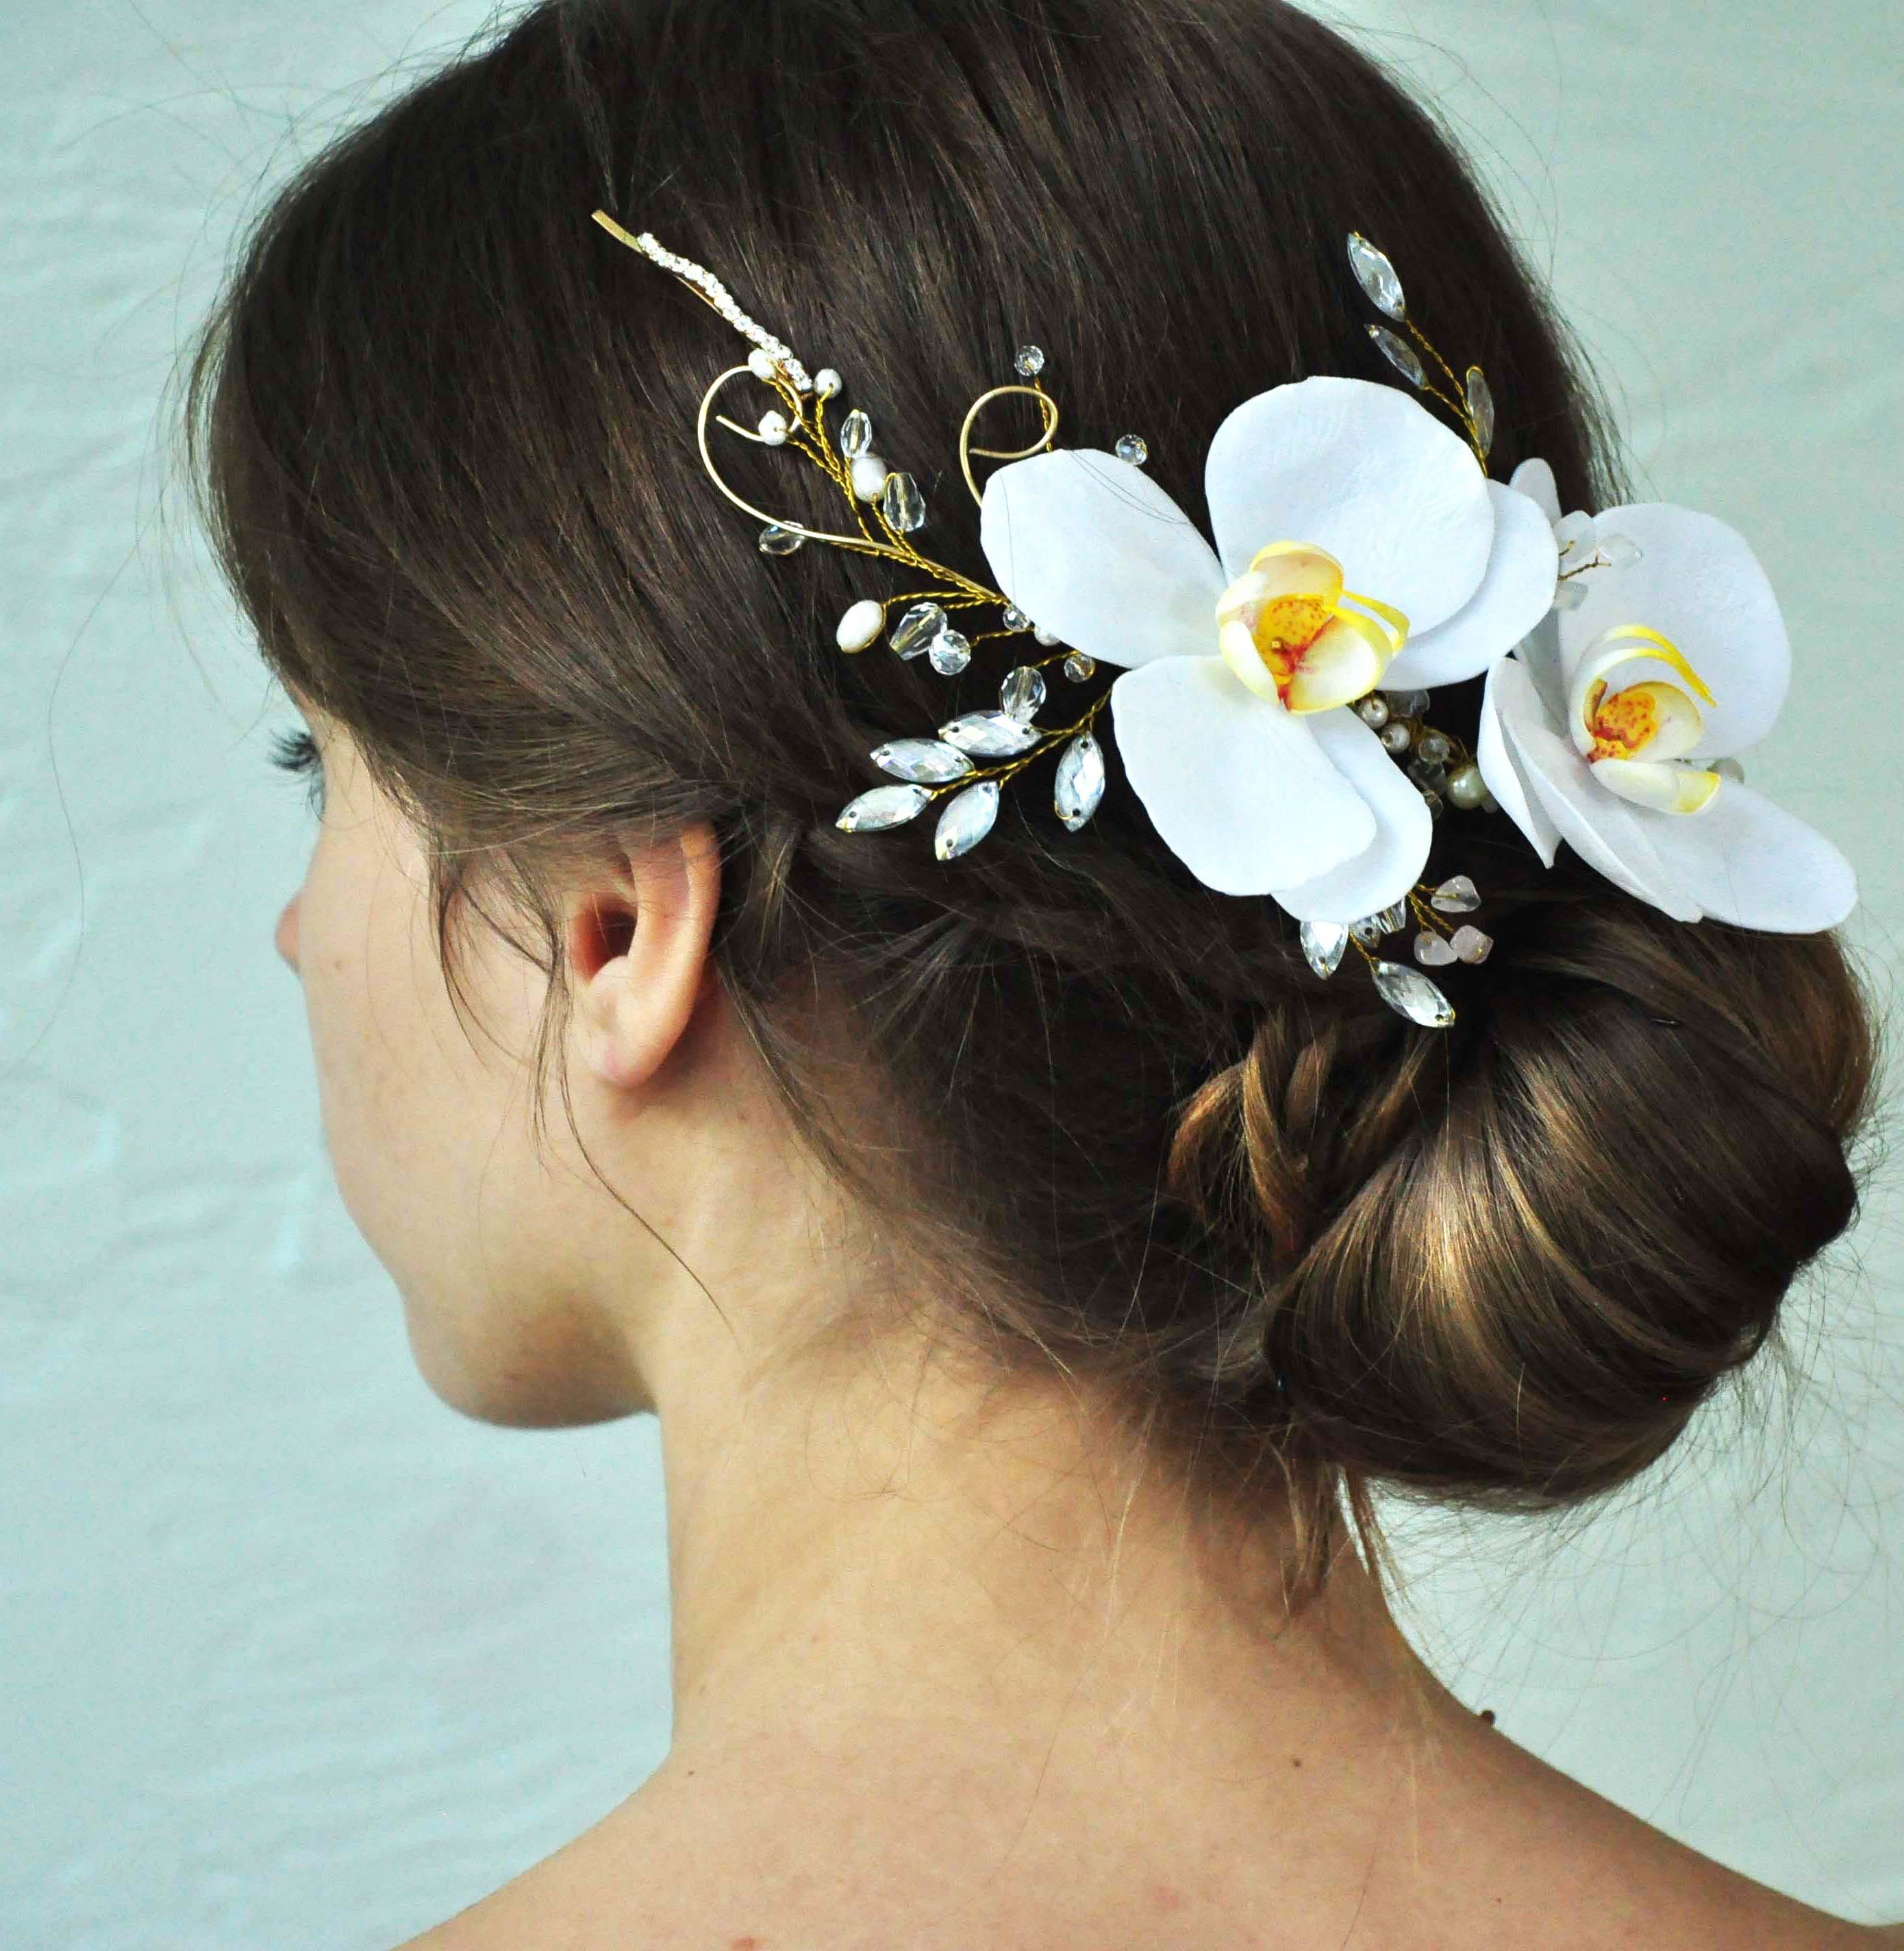 Orchid Flower Hair Piece Bridal Flower Hair Vine Wedding Head Etsy Flower Hair Pieces Orchid Hair Piece Floral Hair Pieces